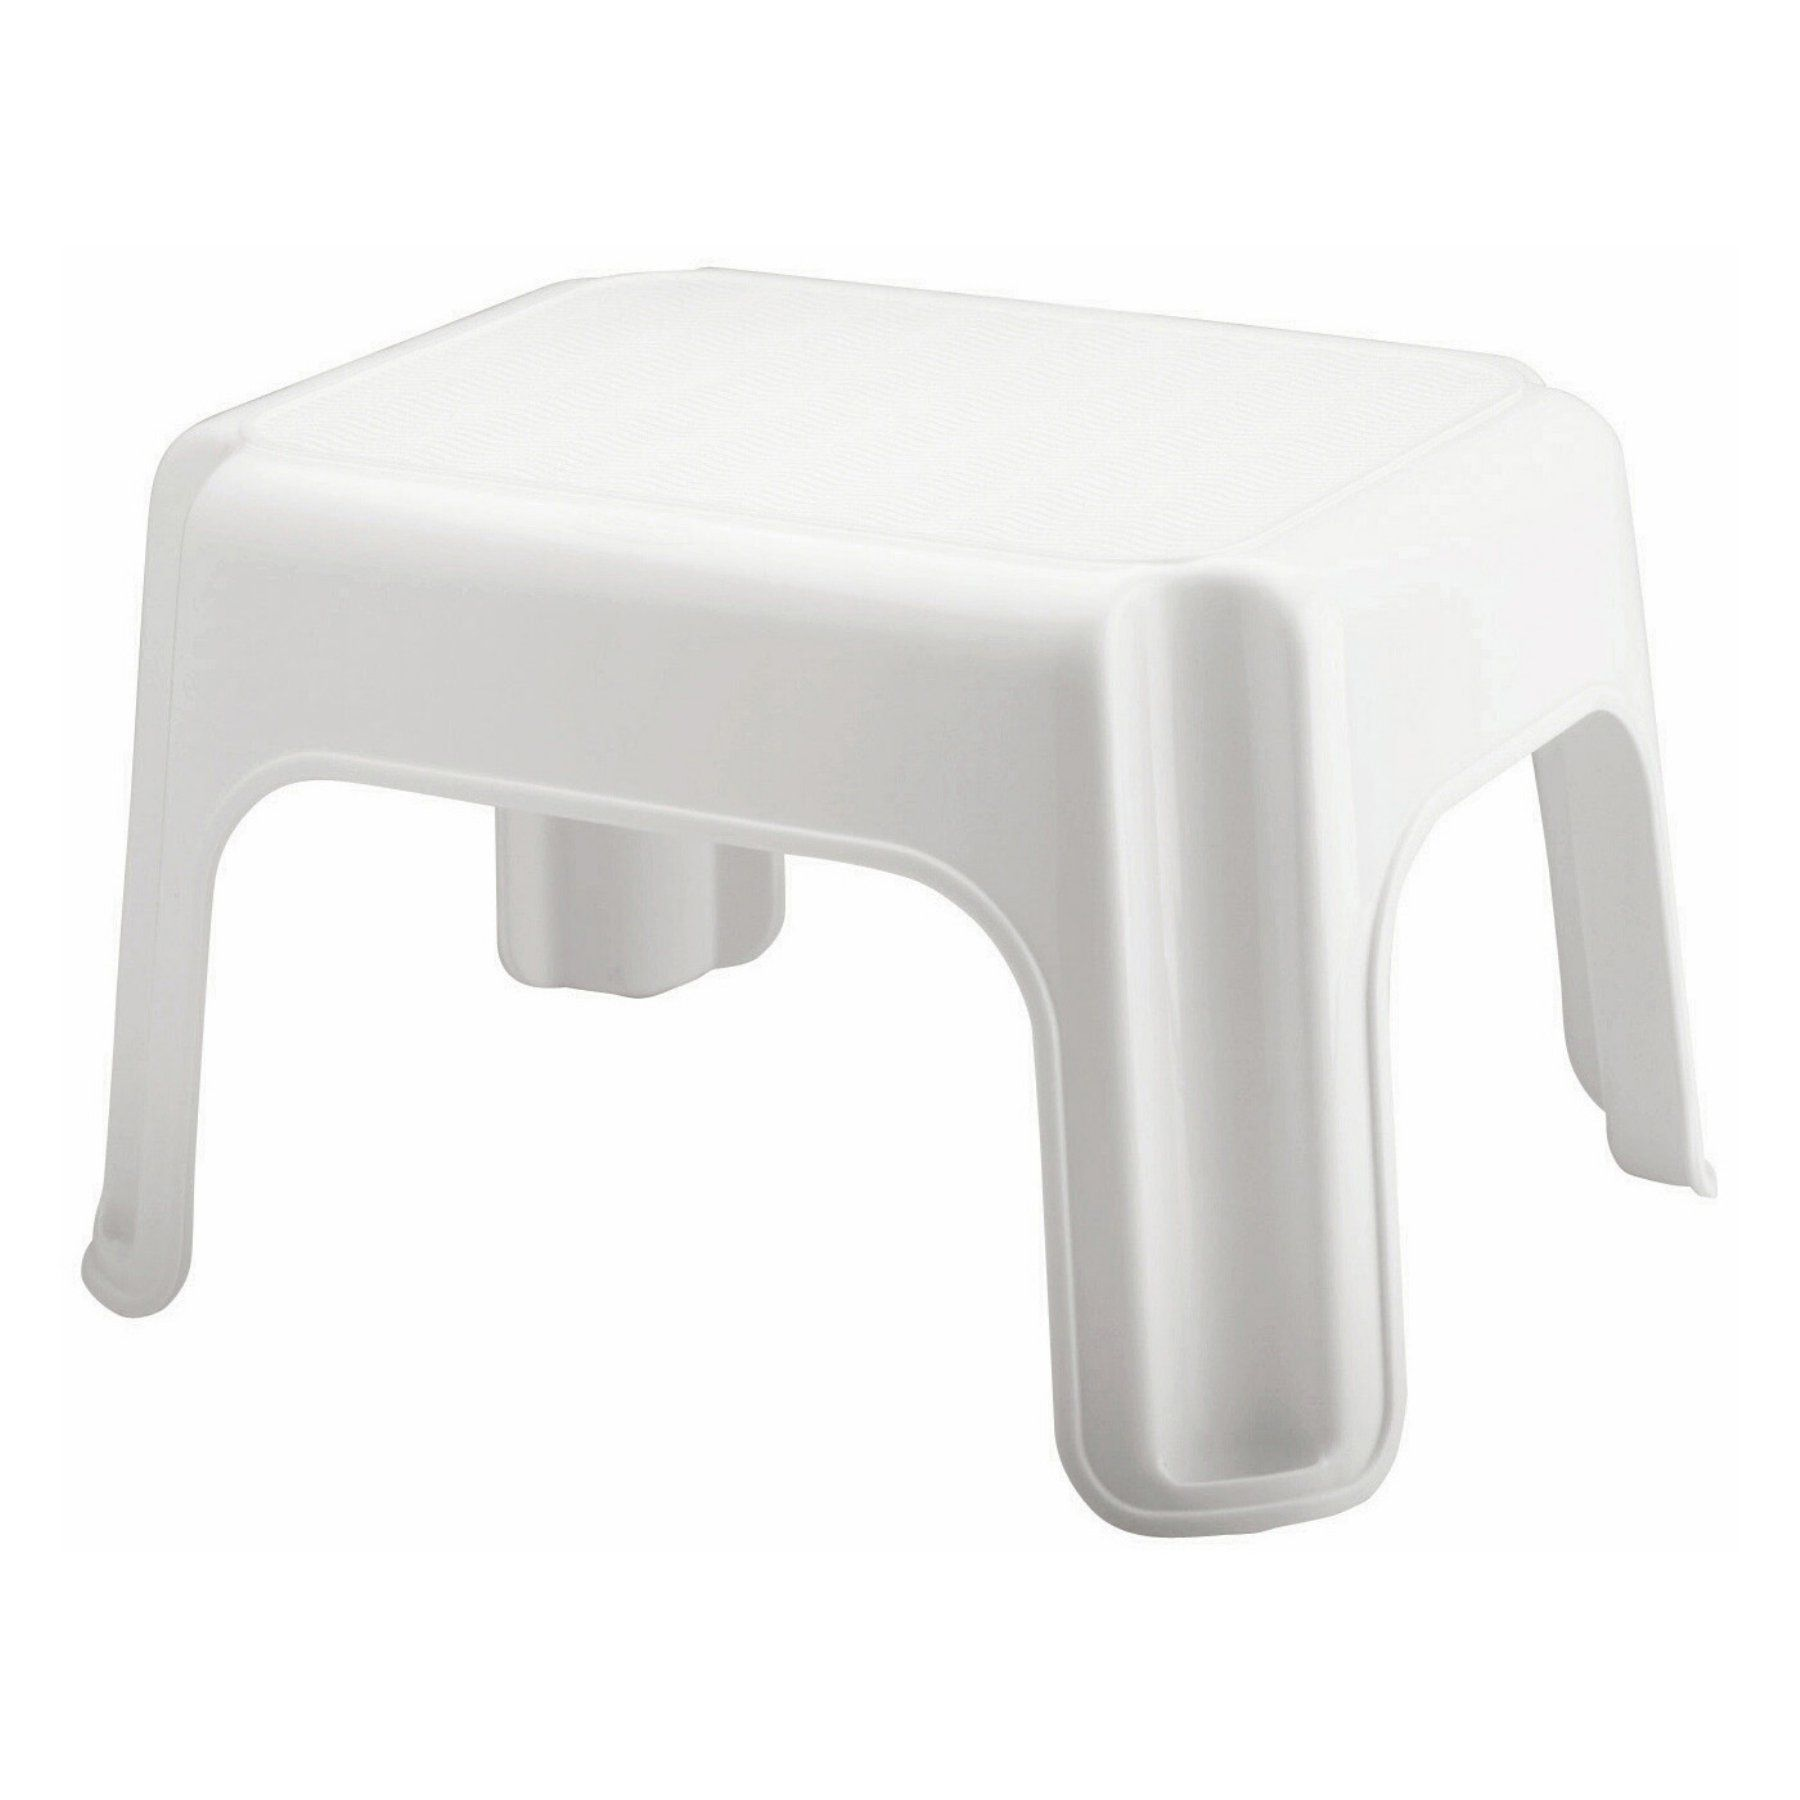 Wondrous Rubbermaid Roughneck Step Stool 3391 8038 Products Caraccident5 Cool Chair Designs And Ideas Caraccident5Info